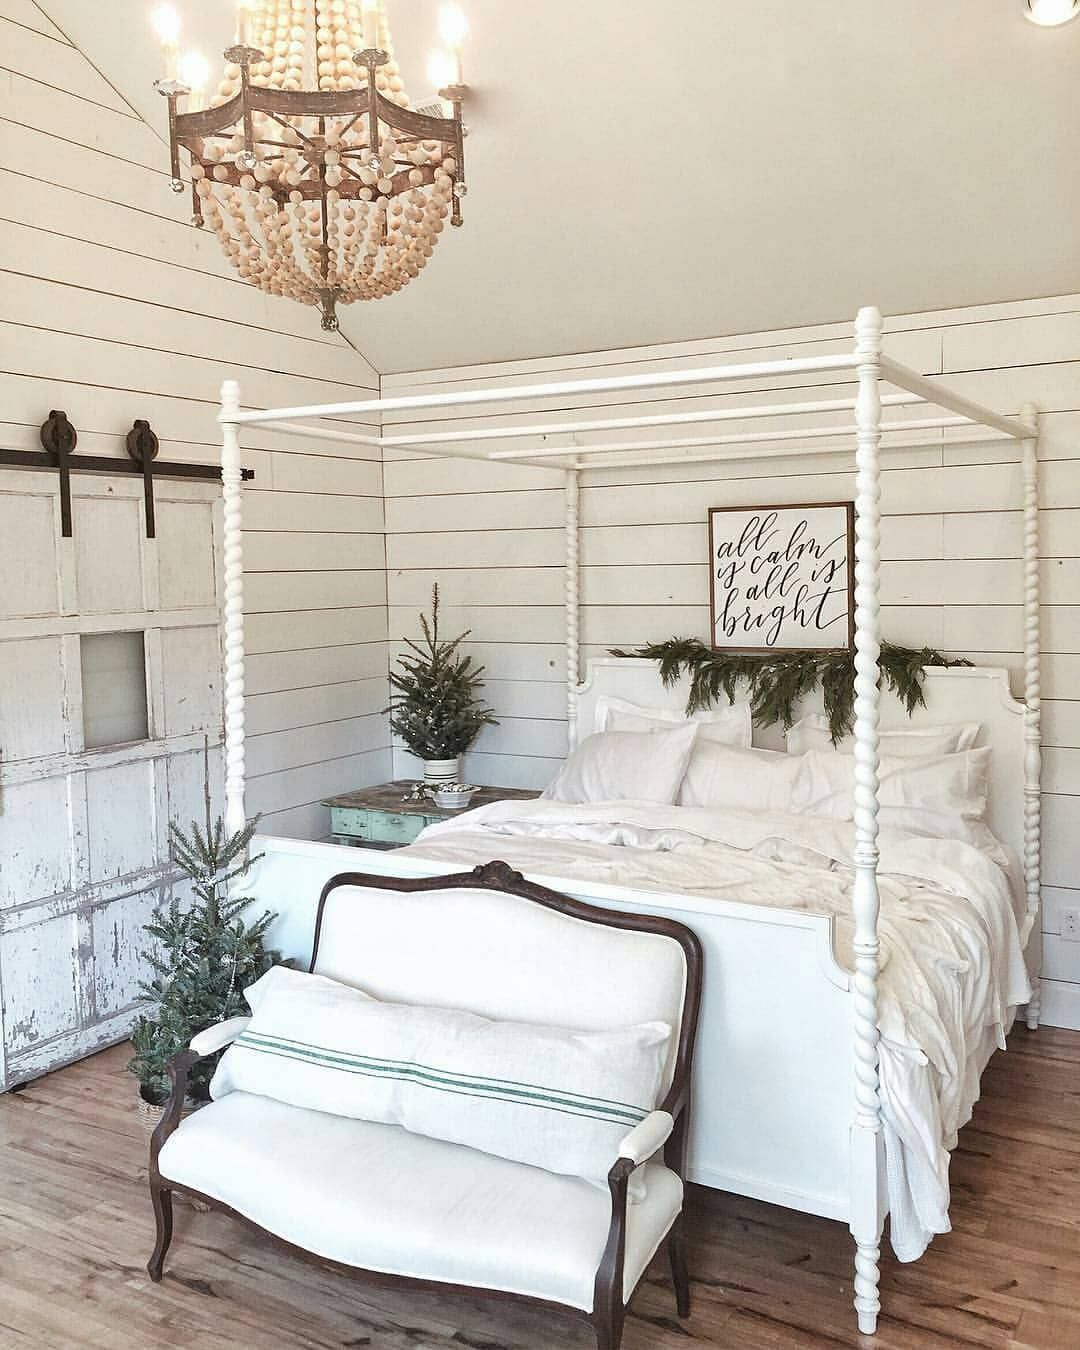 Farmhouse Bedroom Decor Ideas The Study Of The Comfortable Bedroom Pole Iron Bed Structures Pat Home Decor Bedroom Shabby Chic Bedrooms Country House Decor